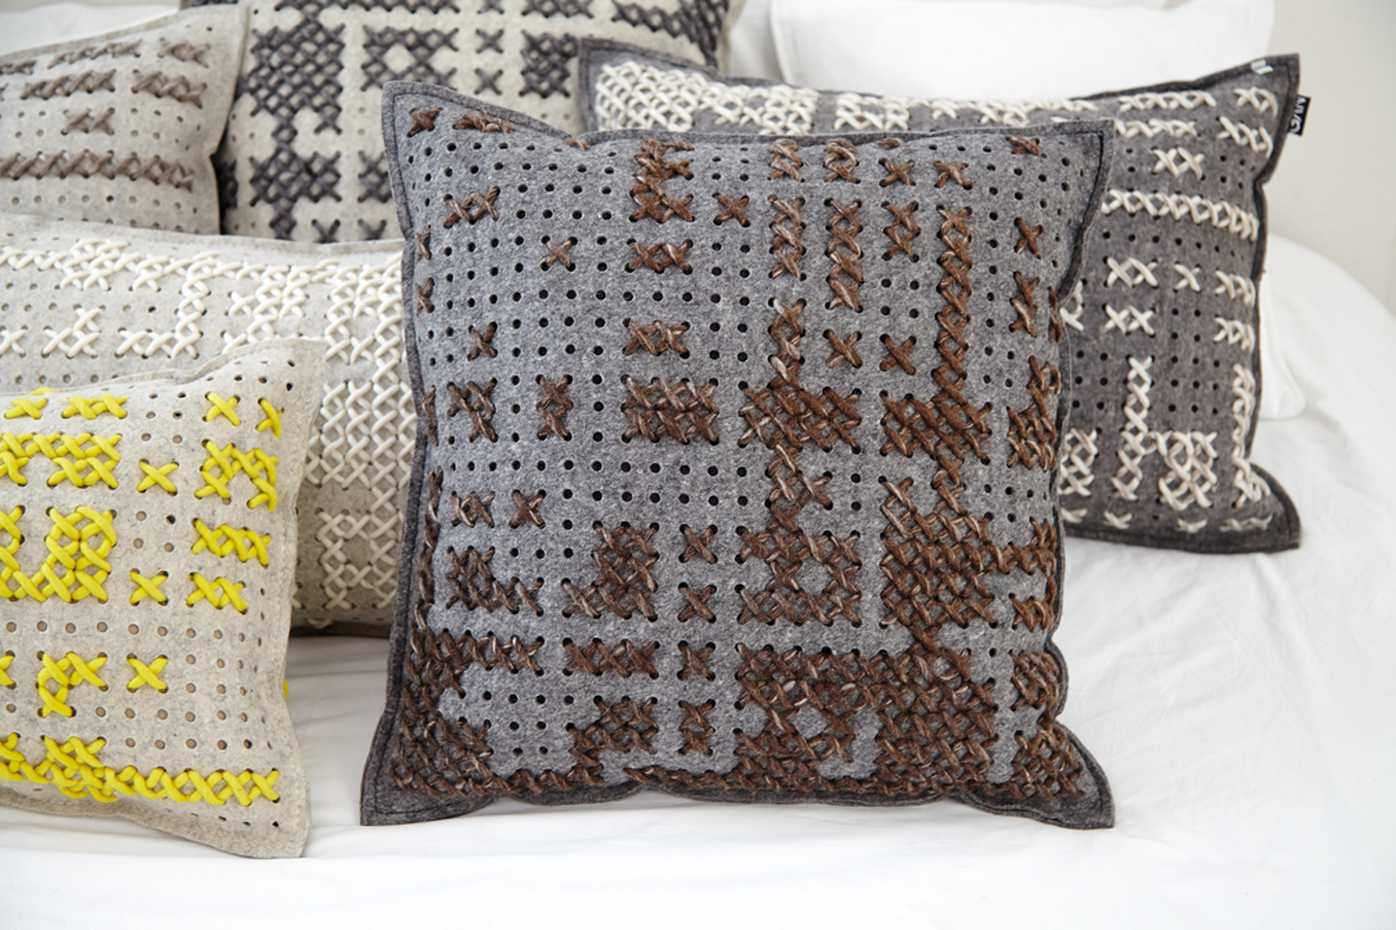 Canevas Cushion by Gan Rugs product image 5